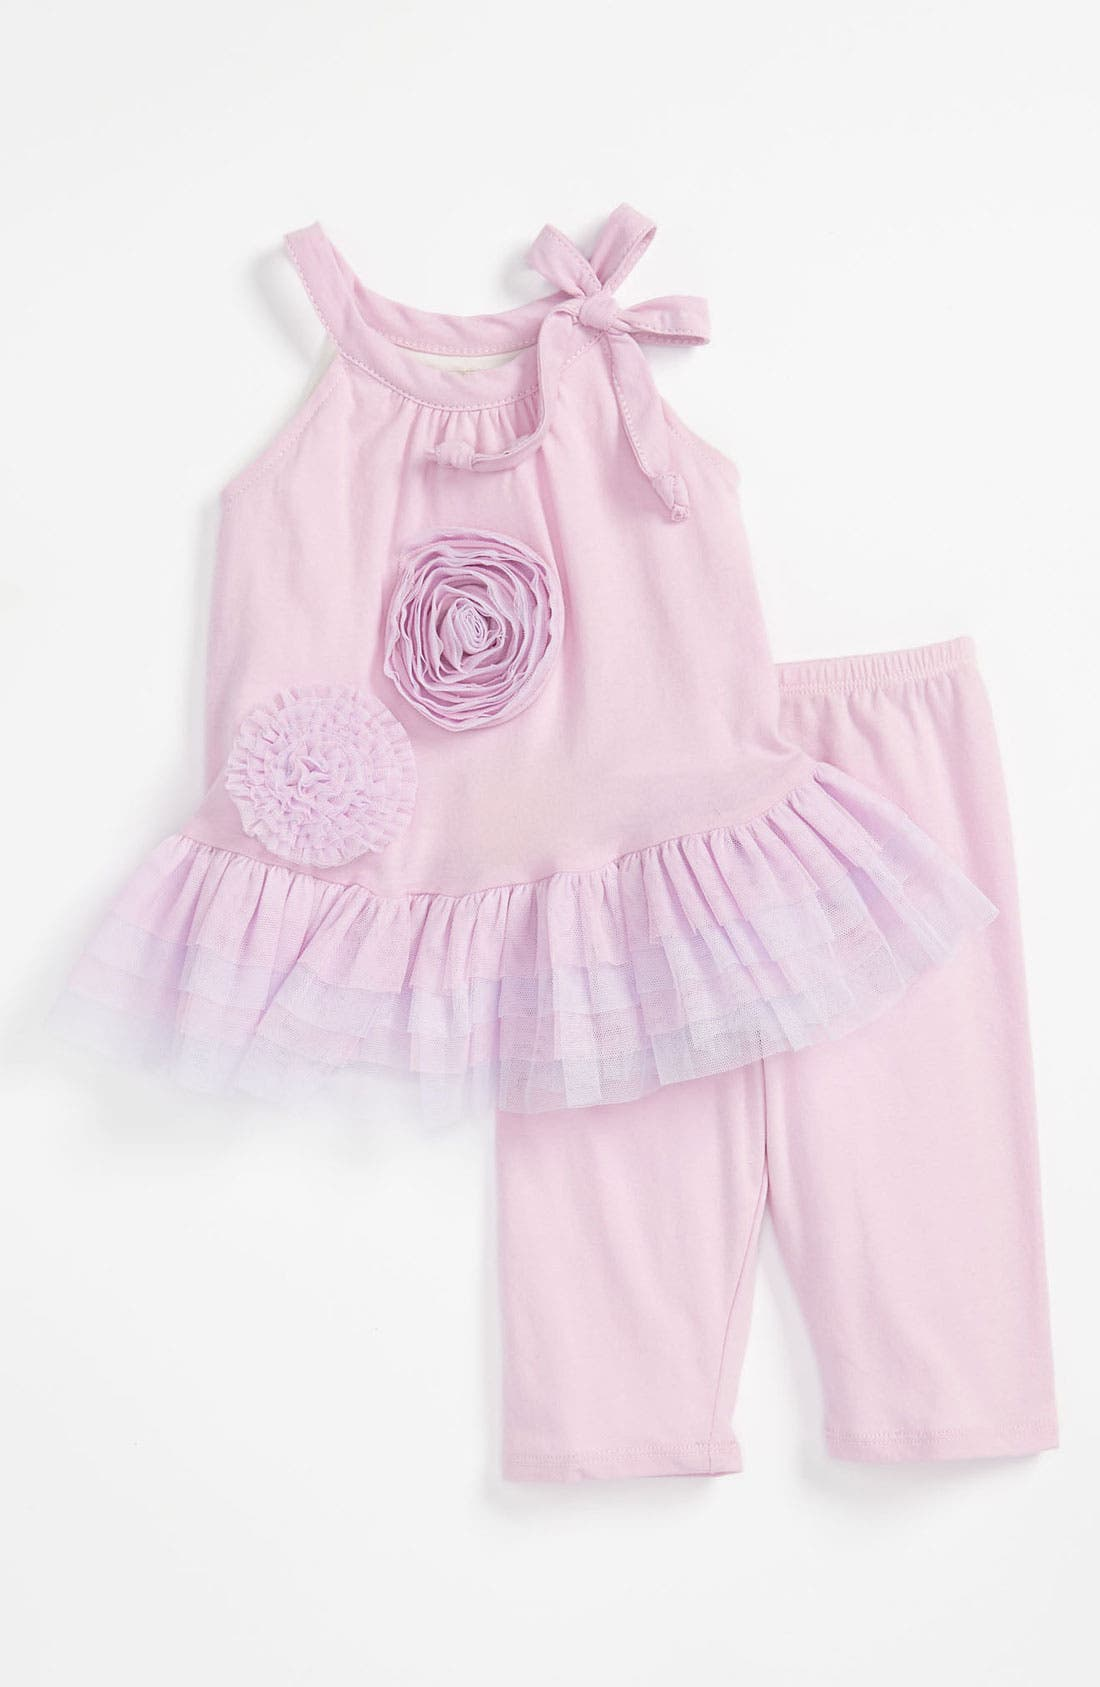 Alternate Image 1 Selected - Isobella & Chloe 'Ballerina' Top & Leggings (Infant)